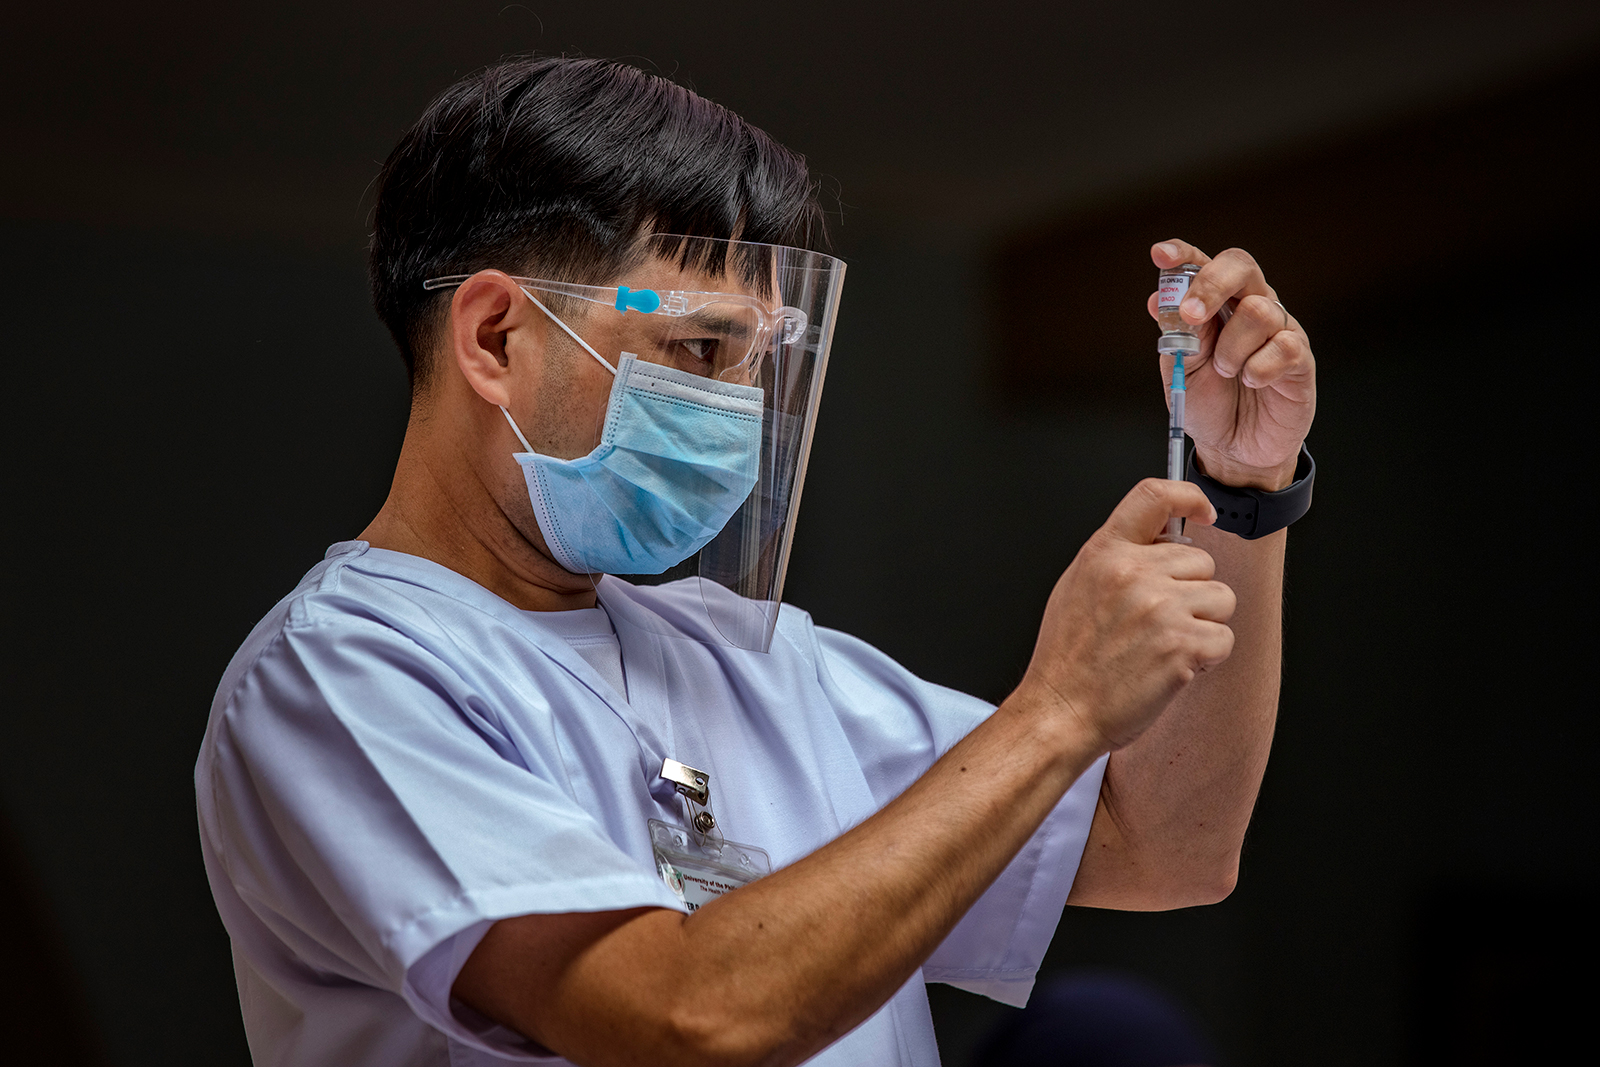 A health worker takes a mock Covid-19 vaccine from a box during a mock vaccination drill at the Philippine General Hospital in Manila, Philippines, on February 15.